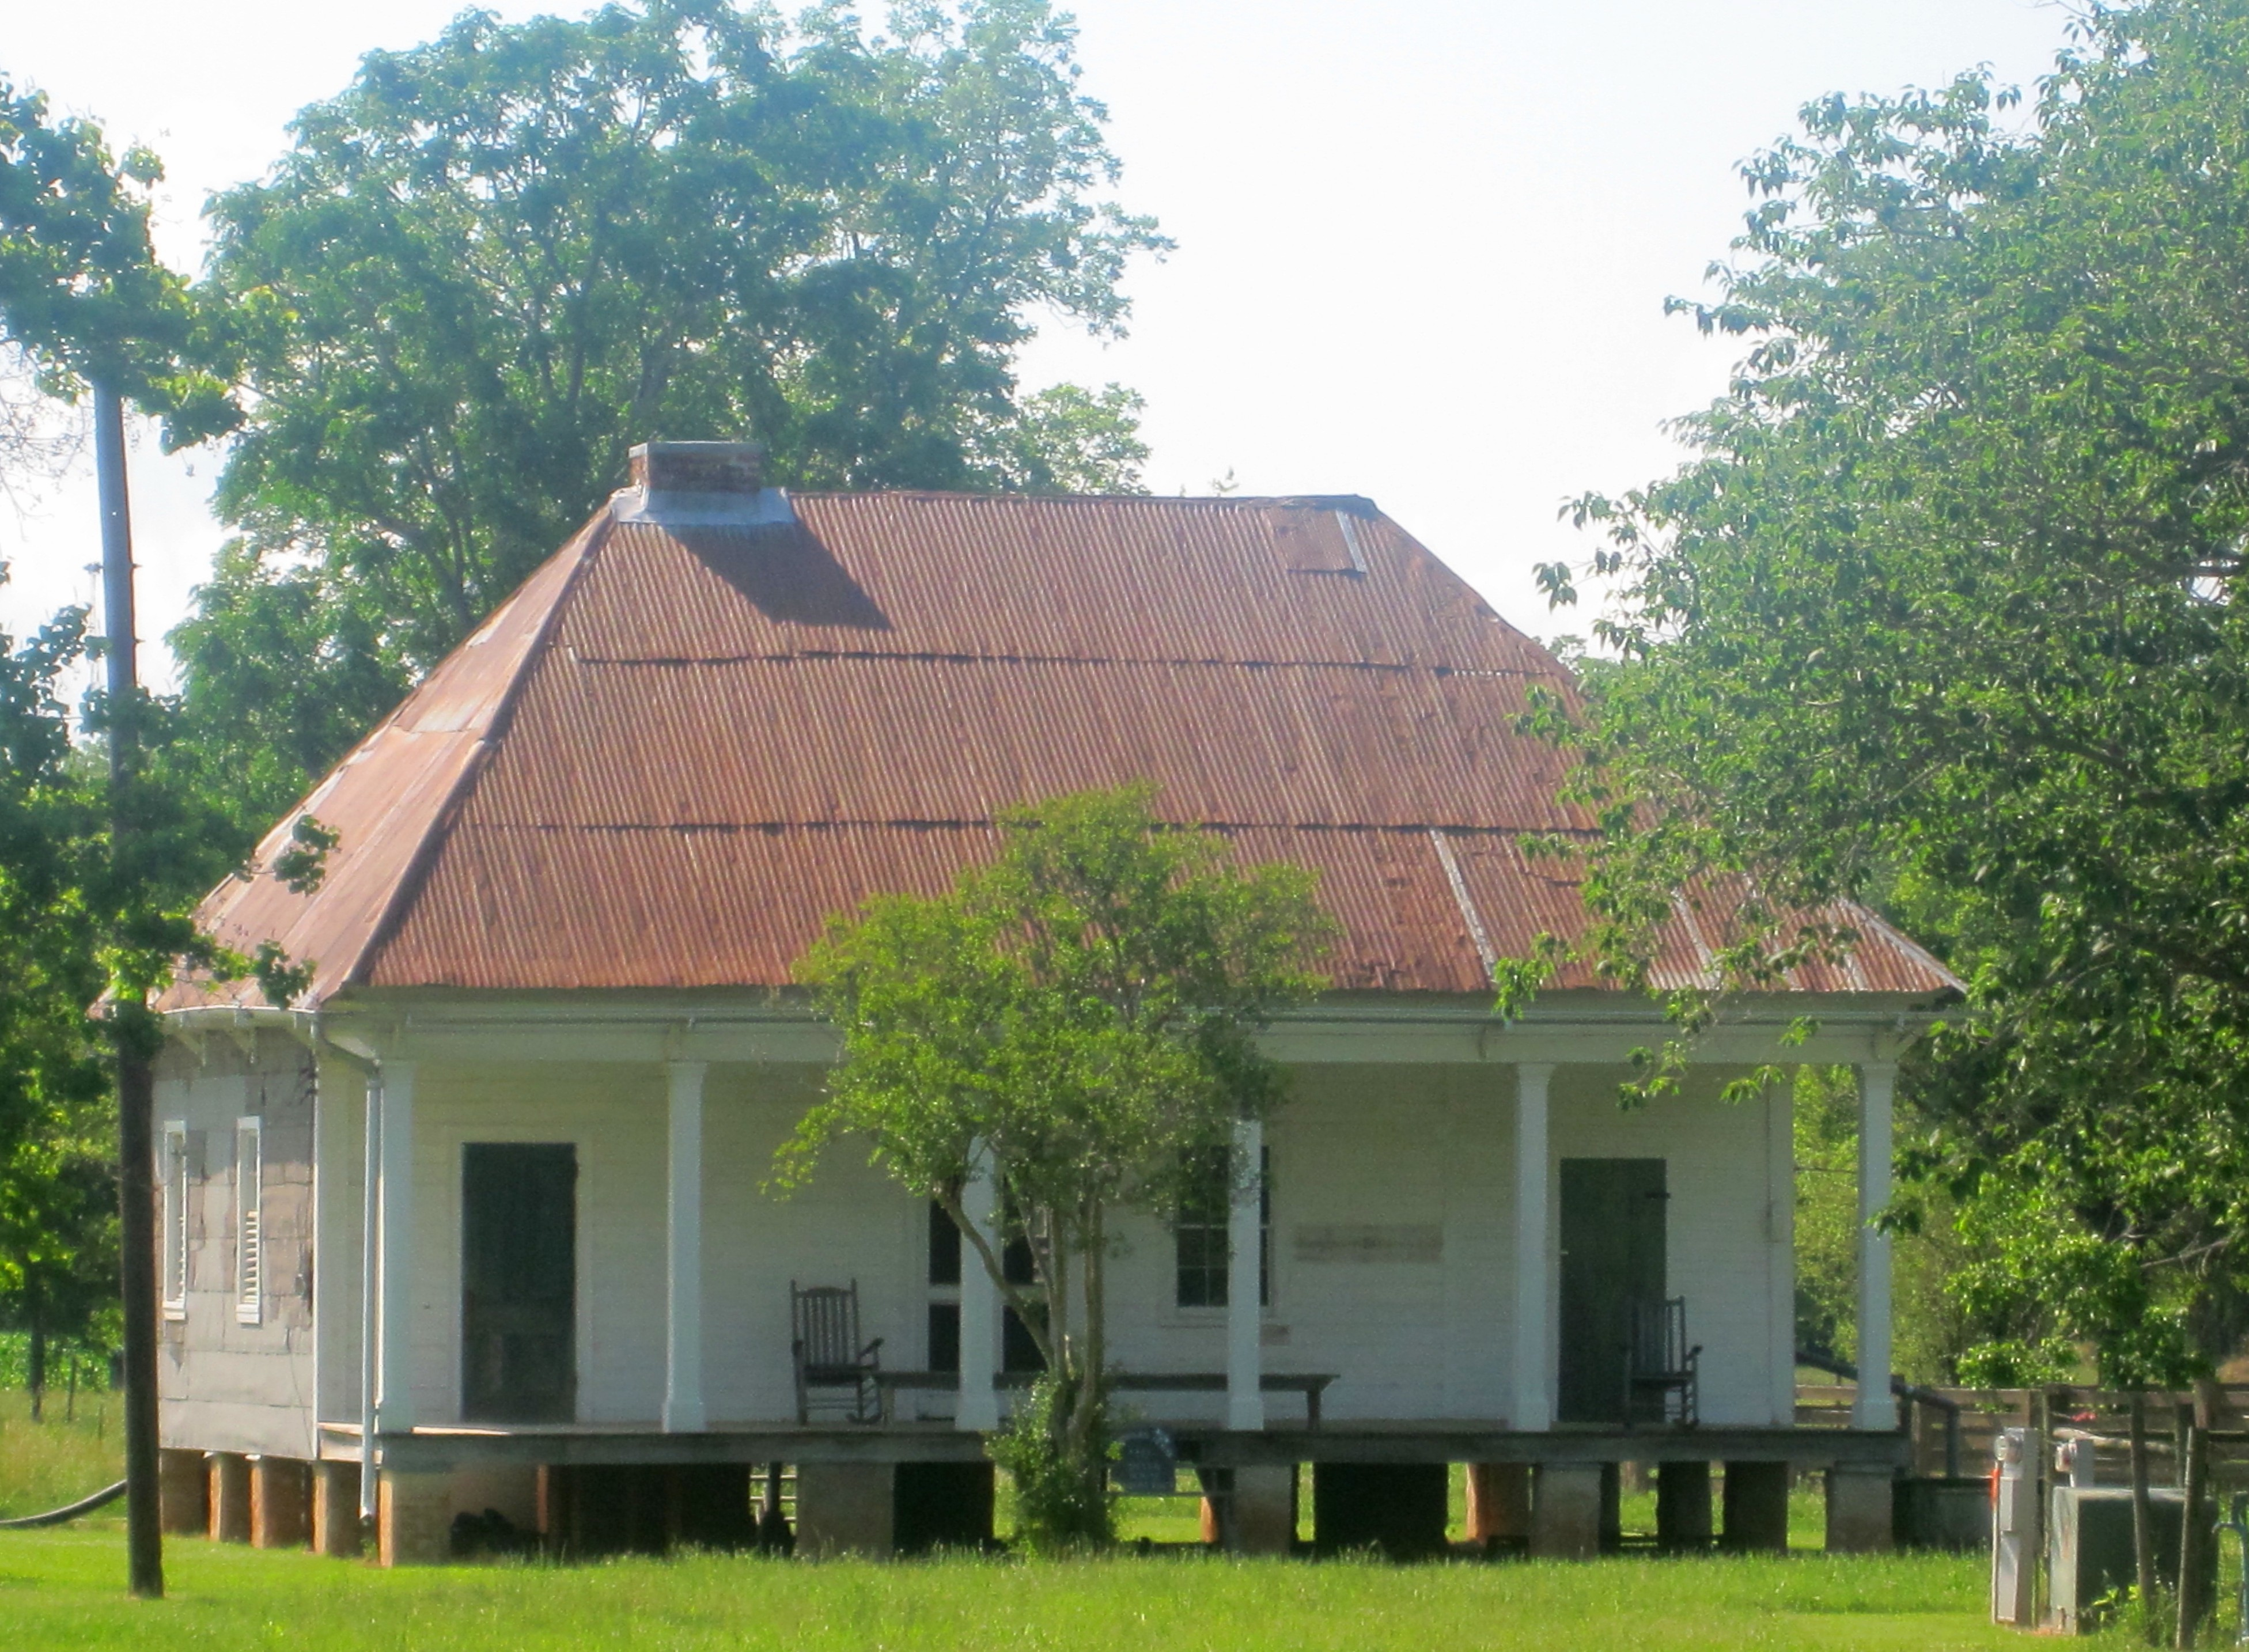 Plantation Kitchen House Plantation Complexes In The Southern United States  Wikipedia